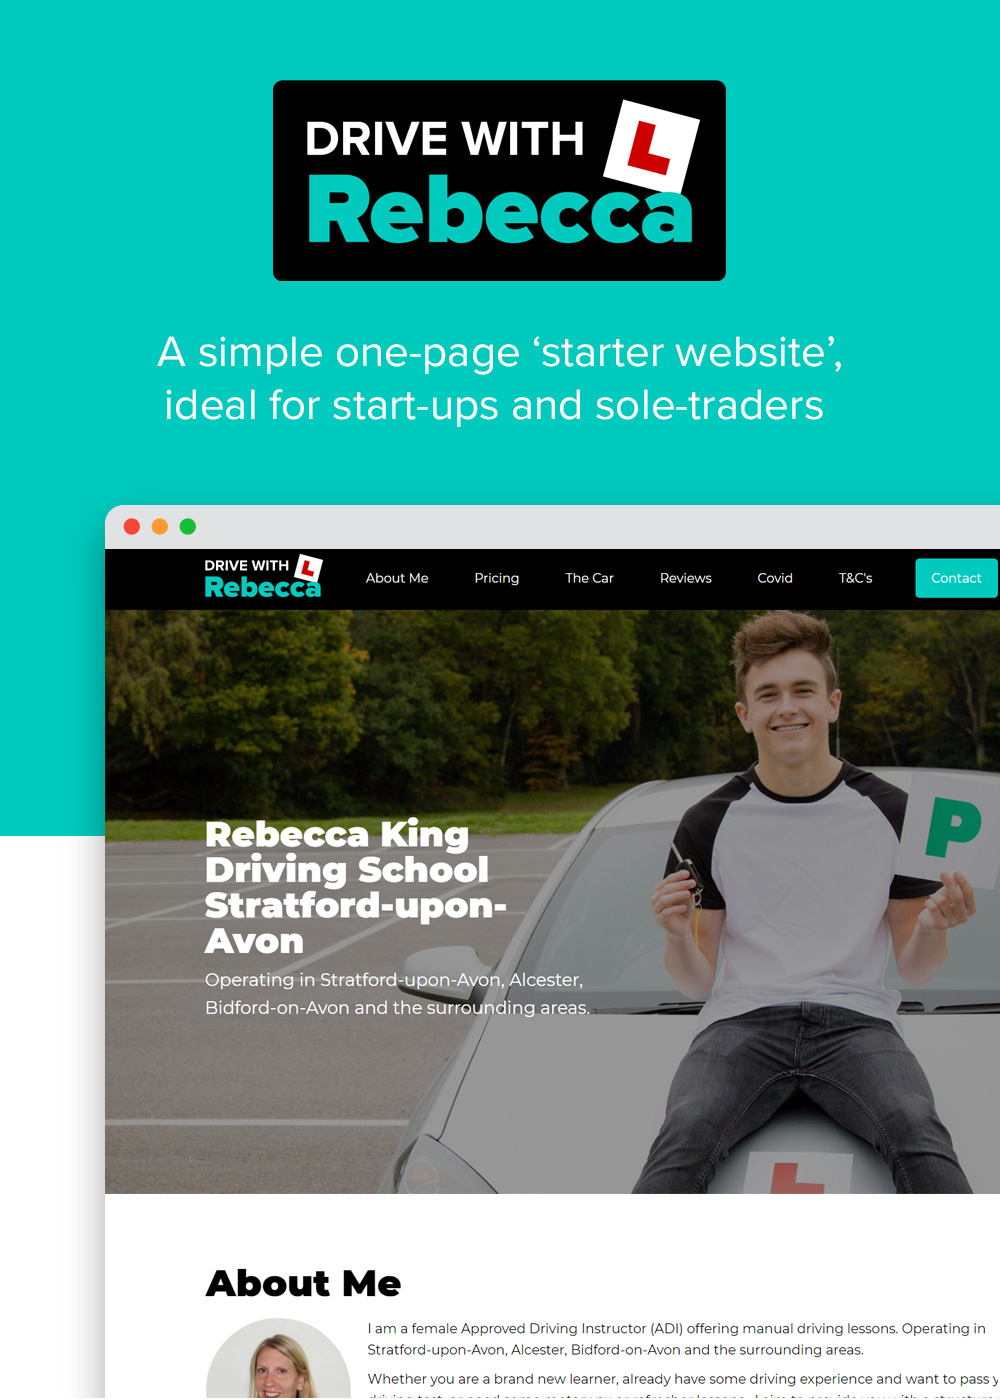 Website designed by Rugby Web Design Limited - Drive with Rebecca